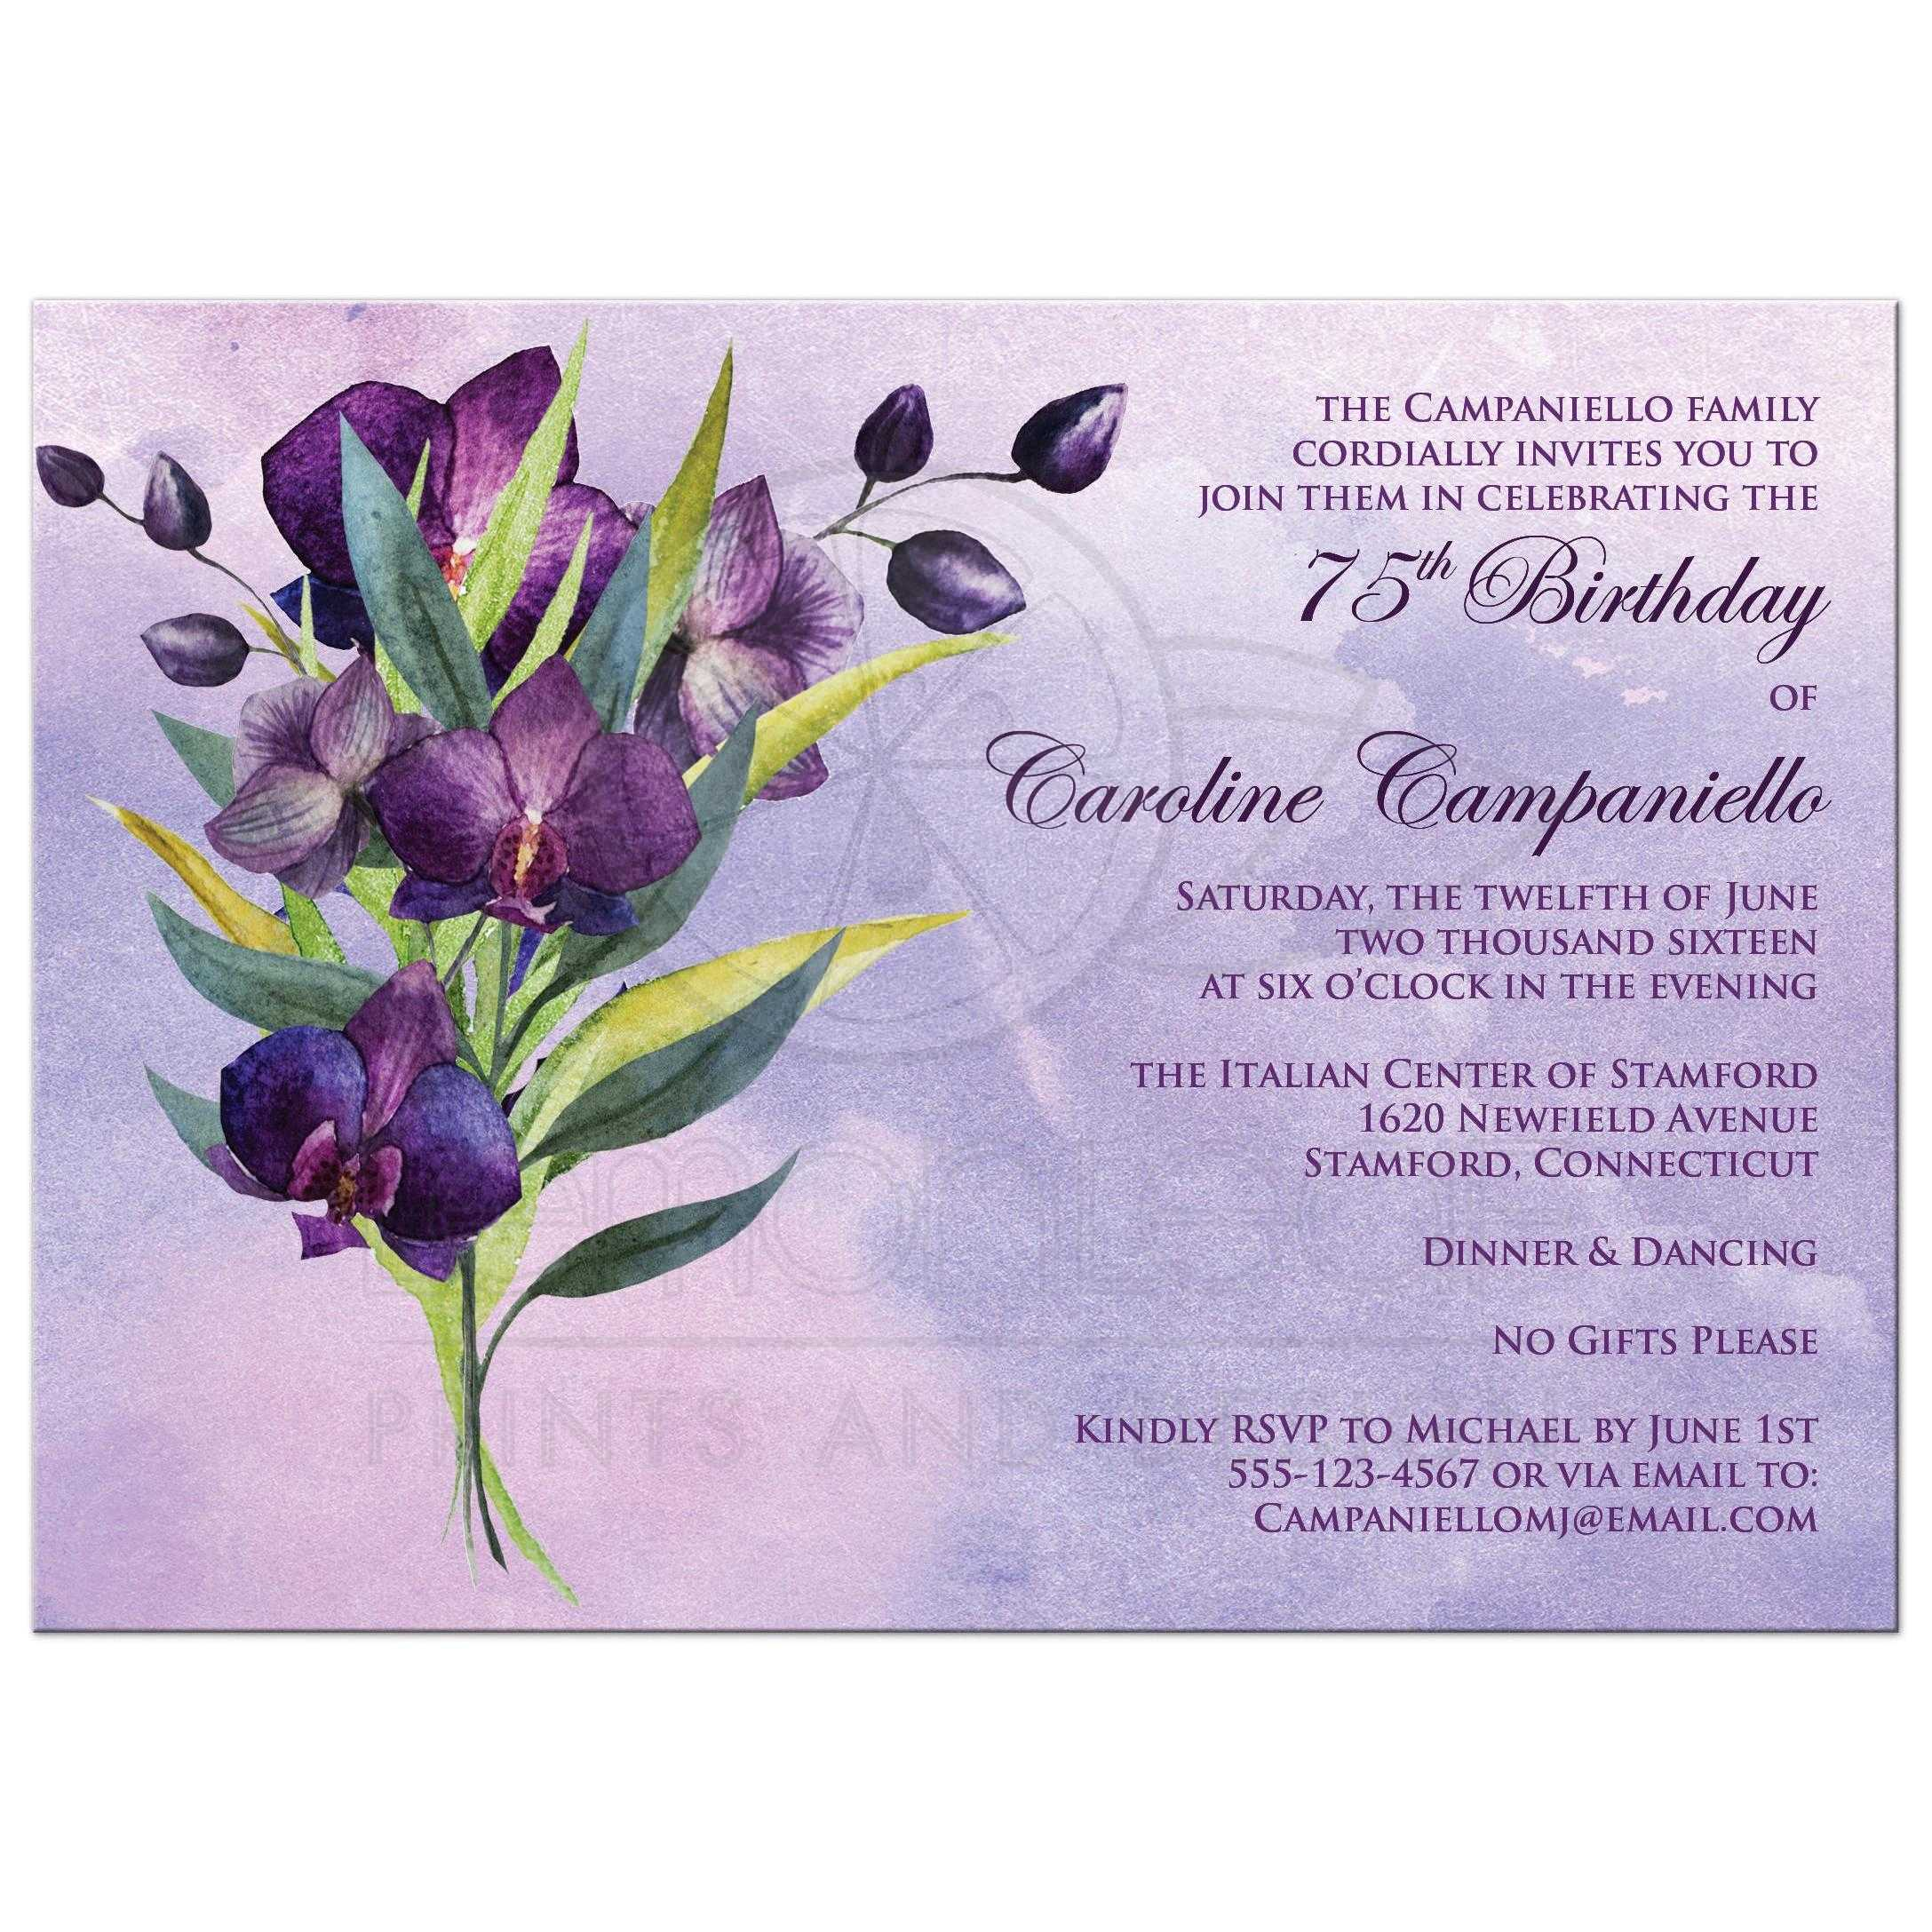 75th Birthday Party Invitation